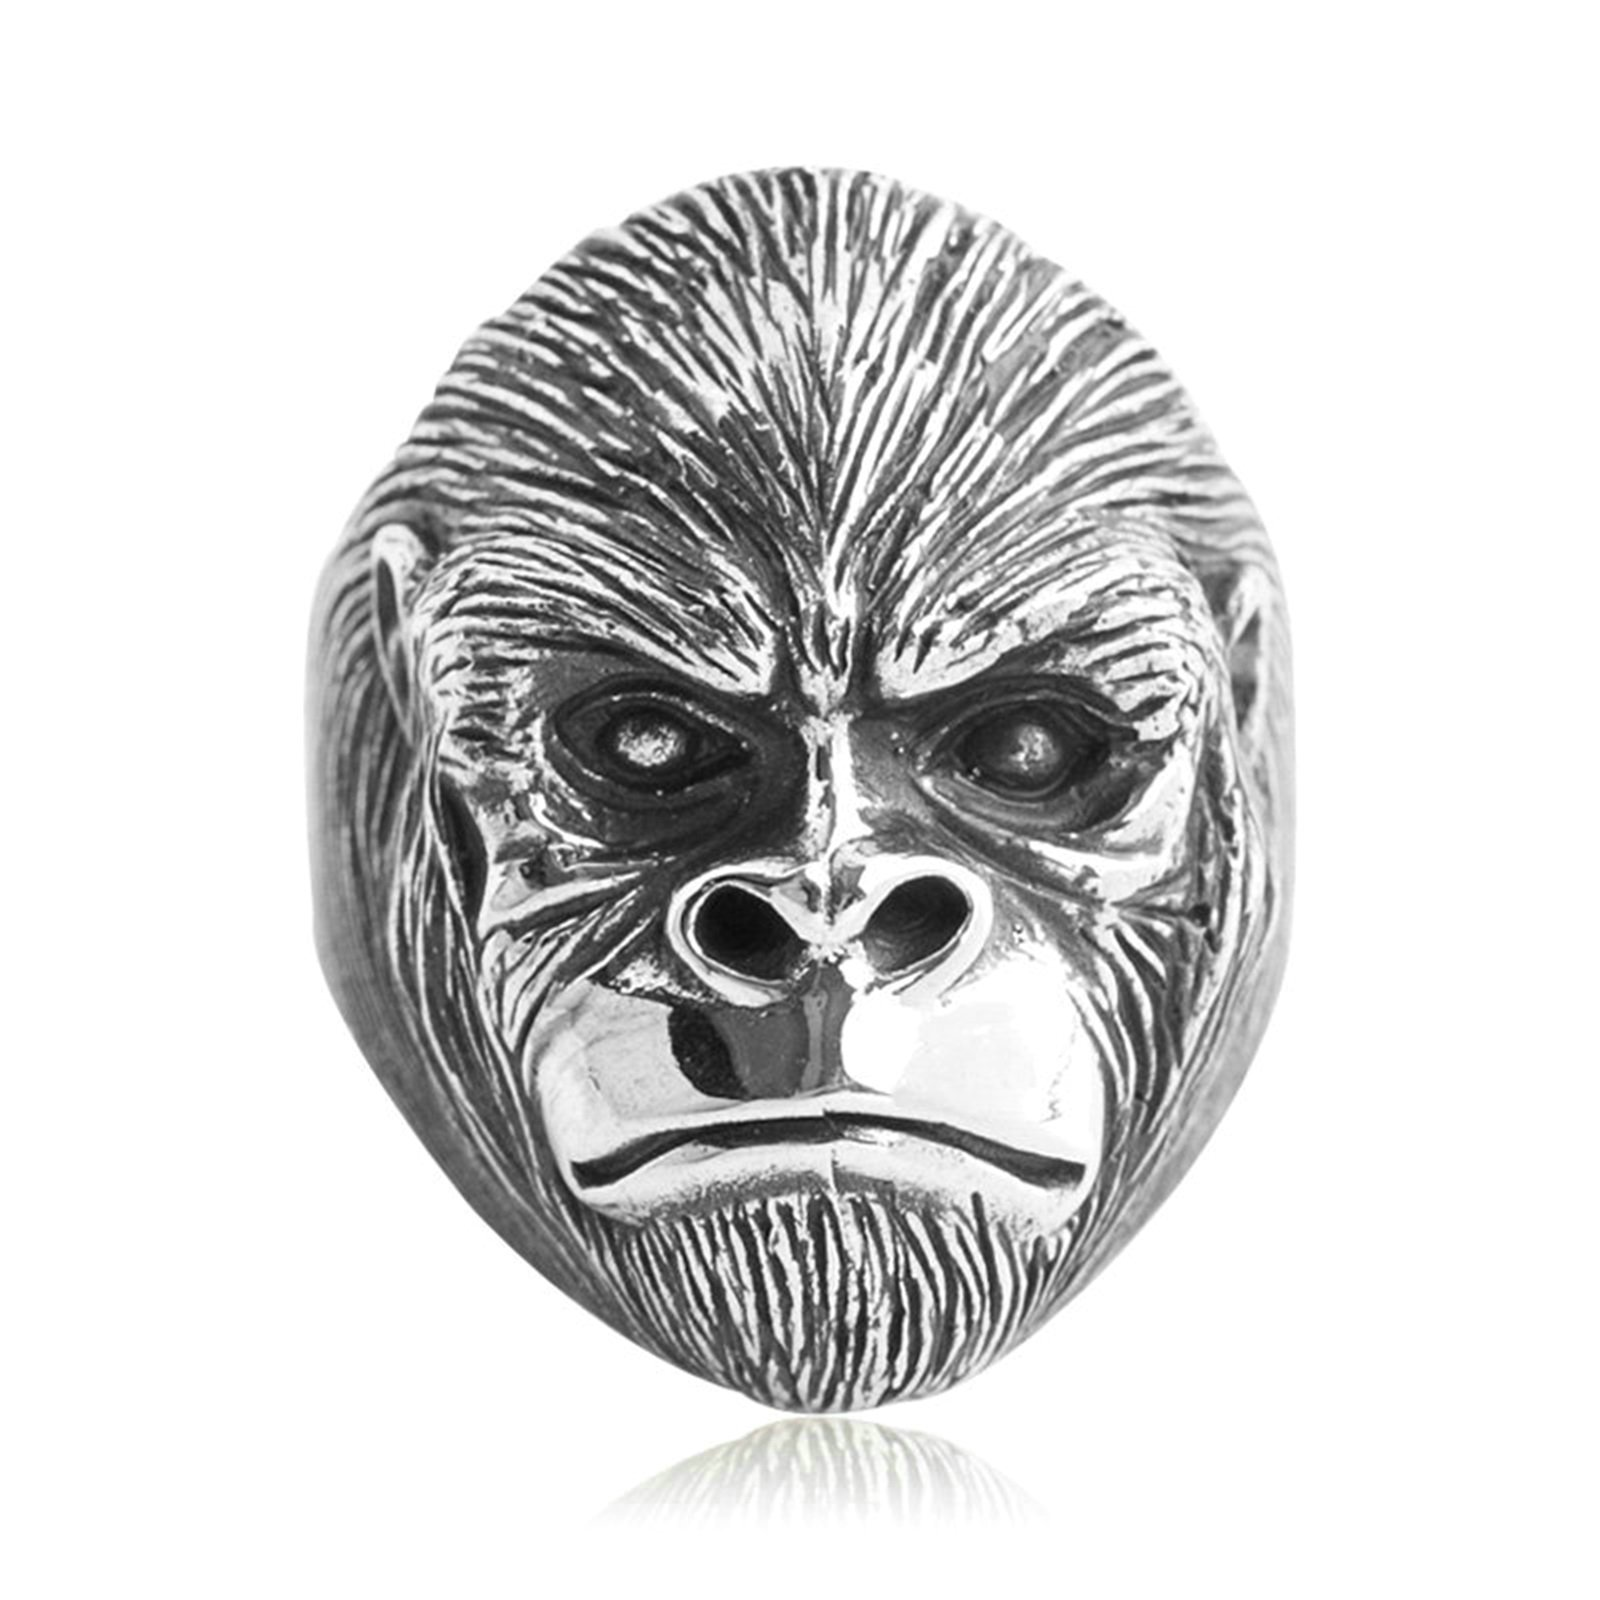 Epinki 925 Sterling Silver Punk Rock Vintage Gothic Gorilla Ring for Men Size 9.5 by Epinki